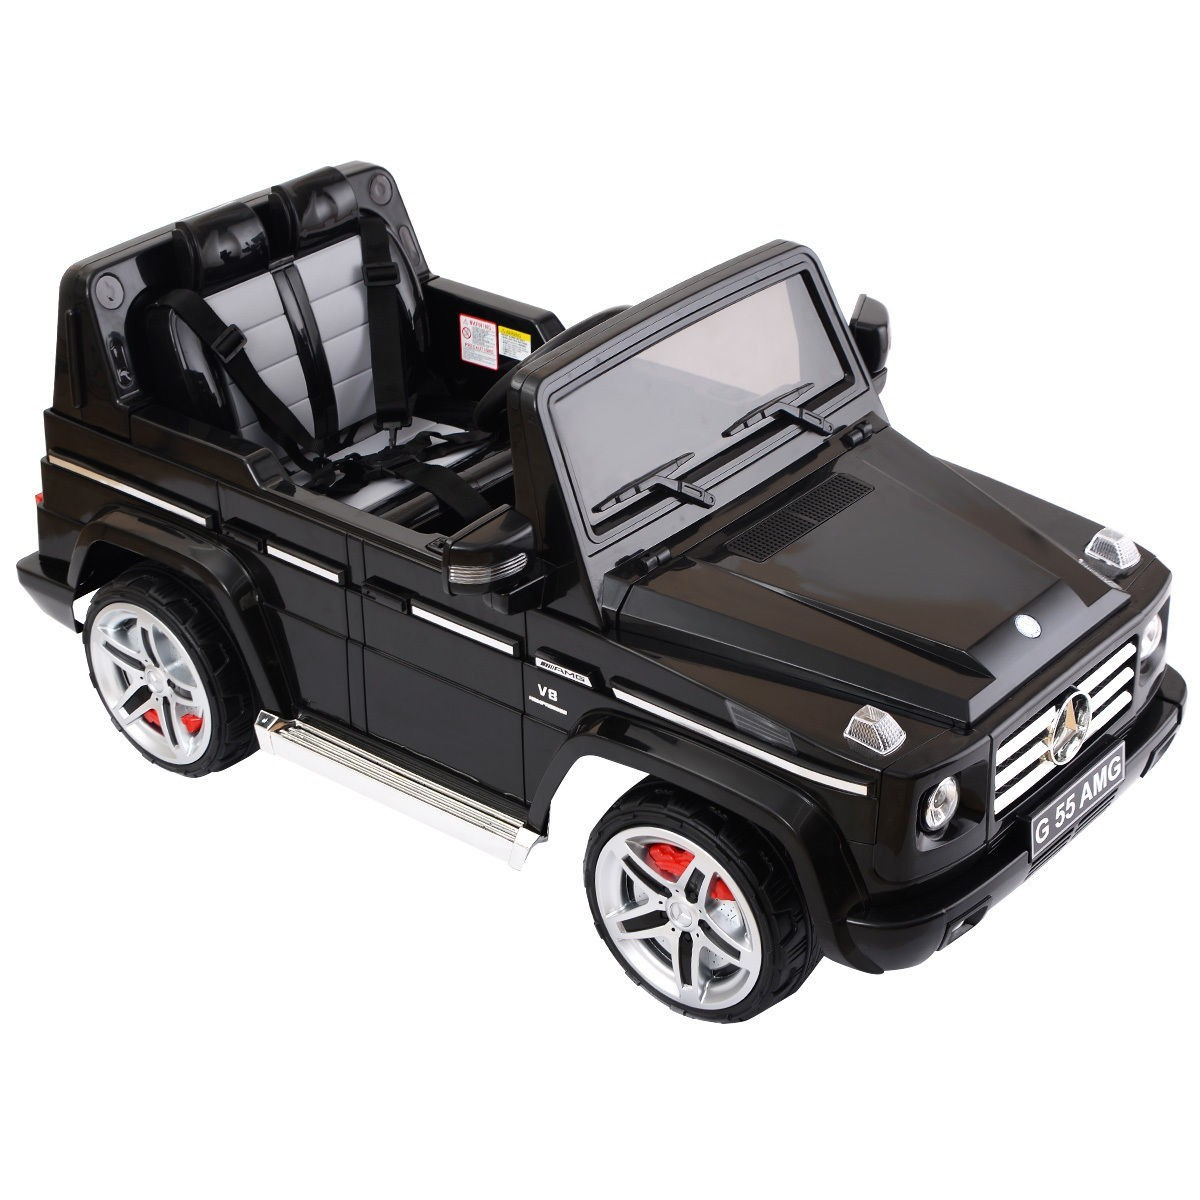 Mercedes Benz G55 12V Electric Kids Ride On Car Truck Licensed RC Remote Control